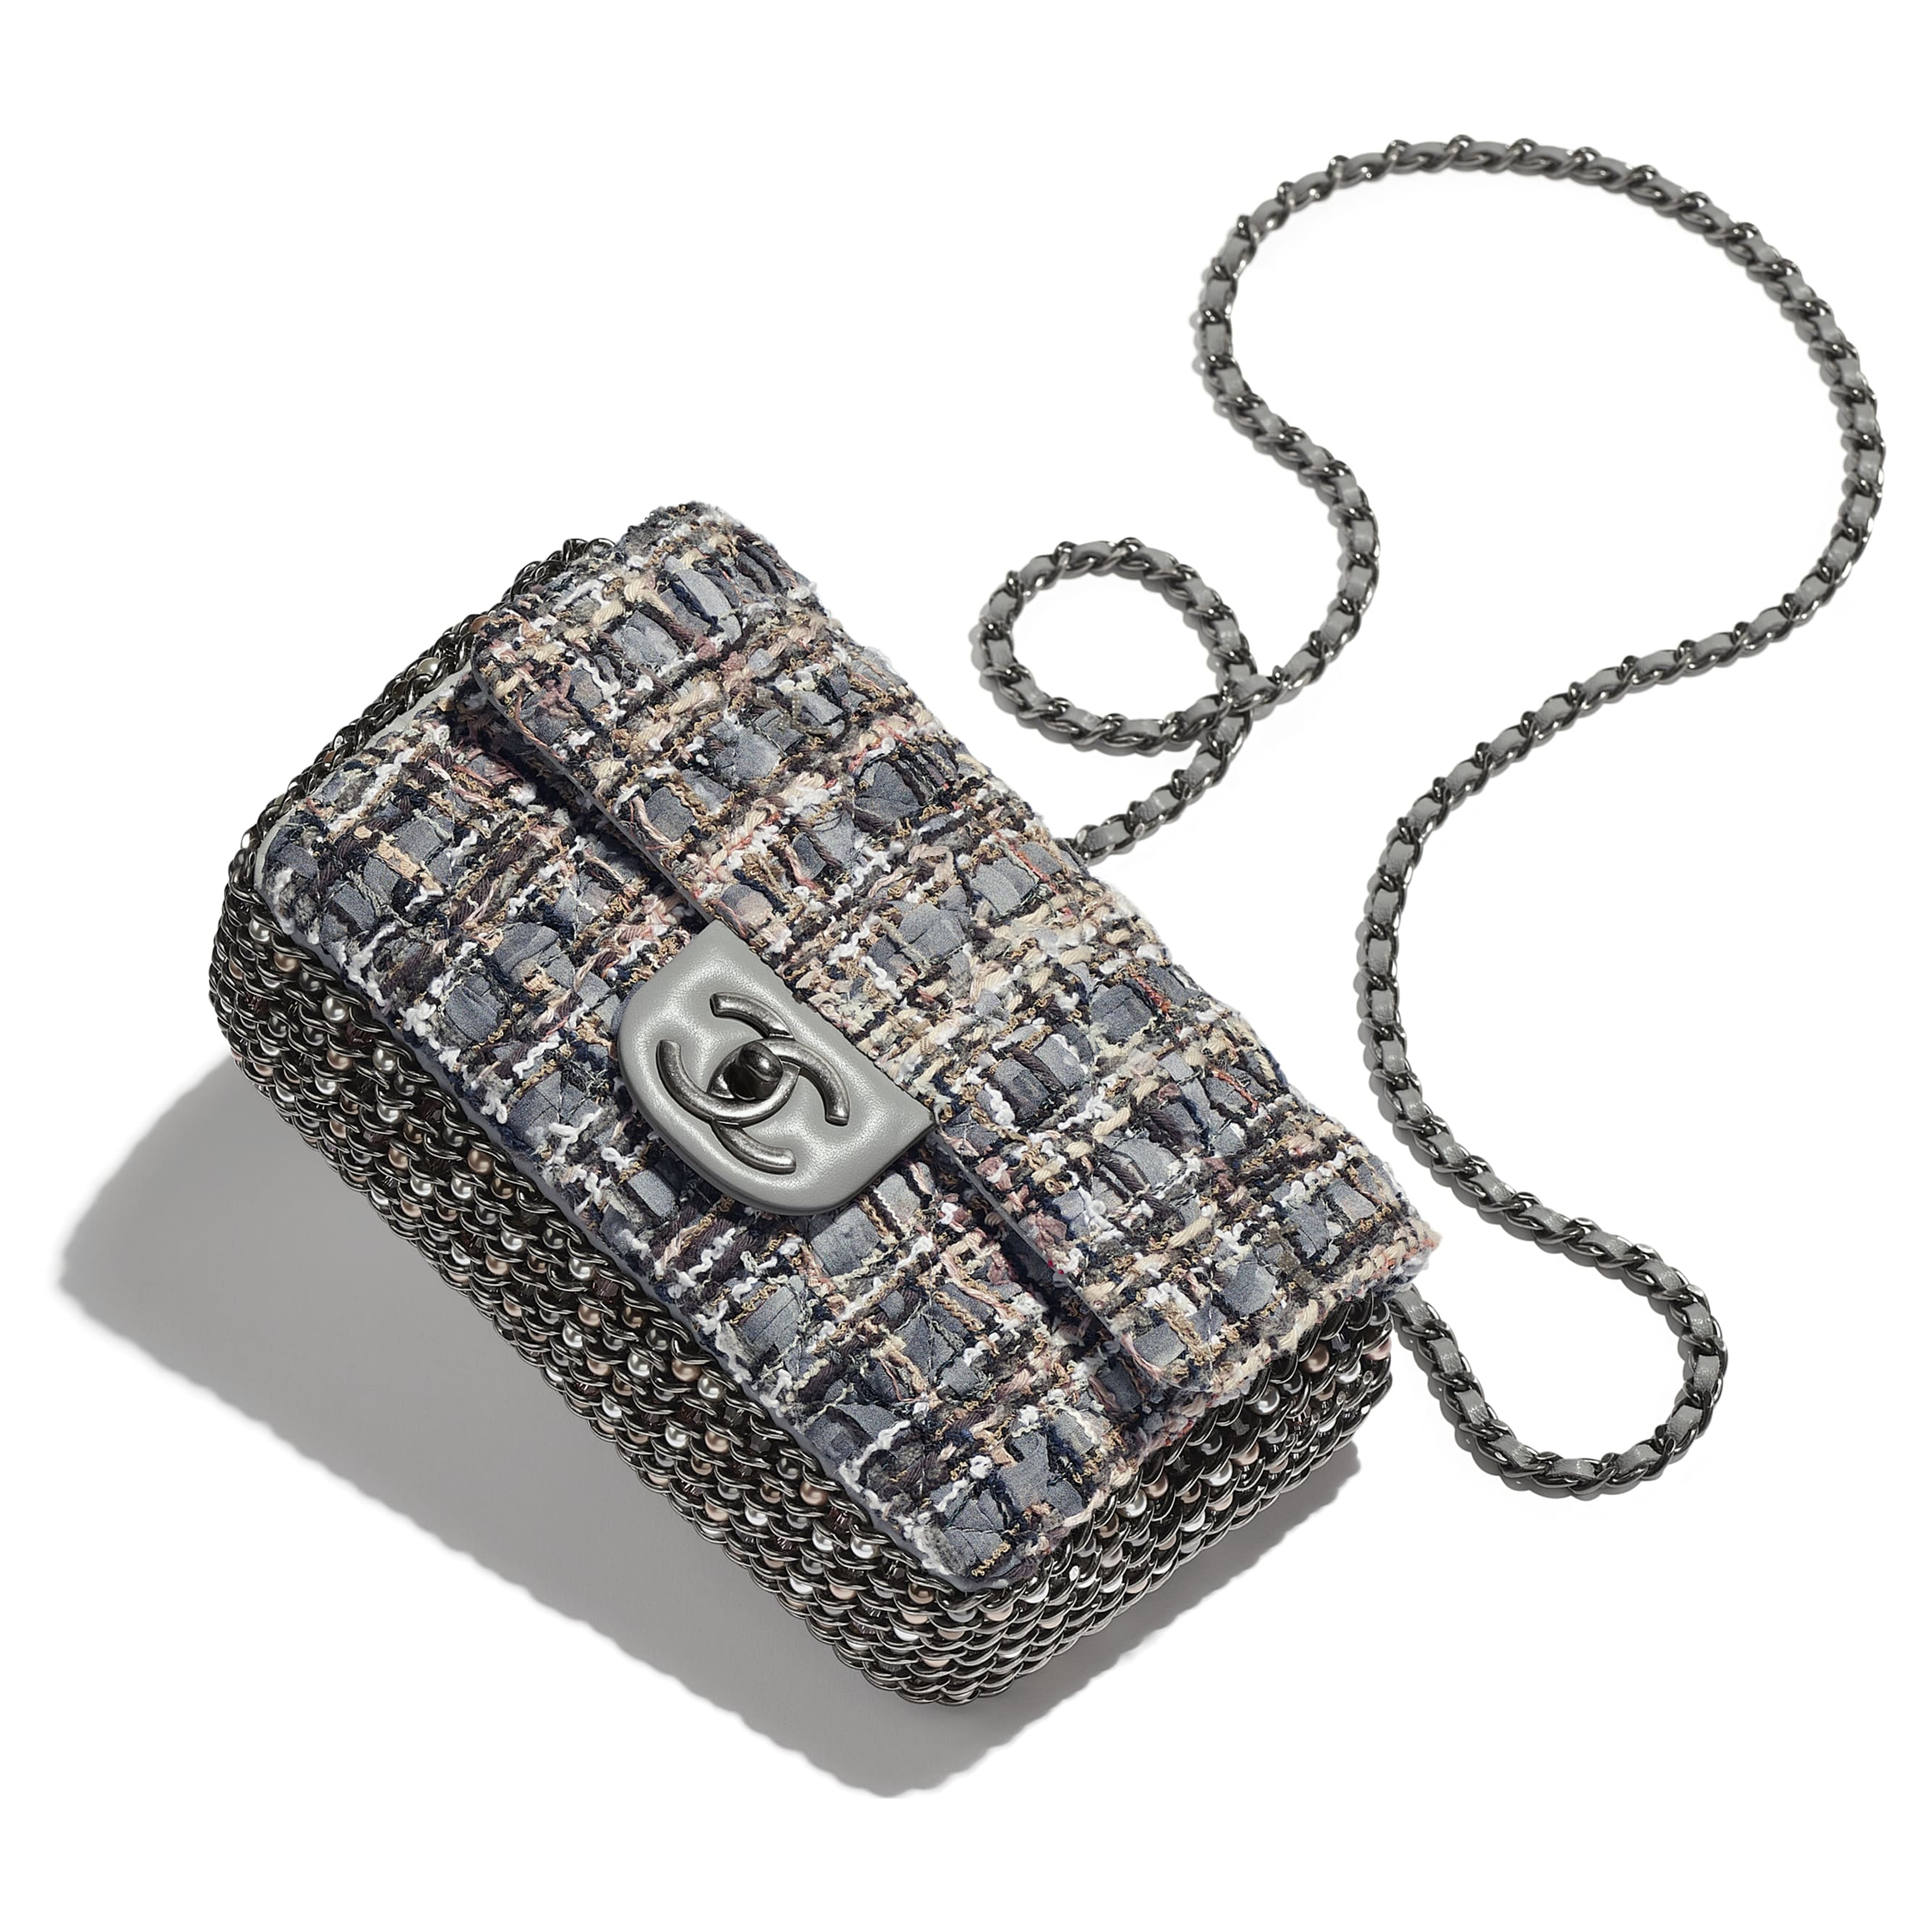 Flap Bag - Grey, Beige, Brown & White - Tweed, Imitation Pearls & Ruthenium-Finish Metal - CHANEL - Extra view - see standard sized version